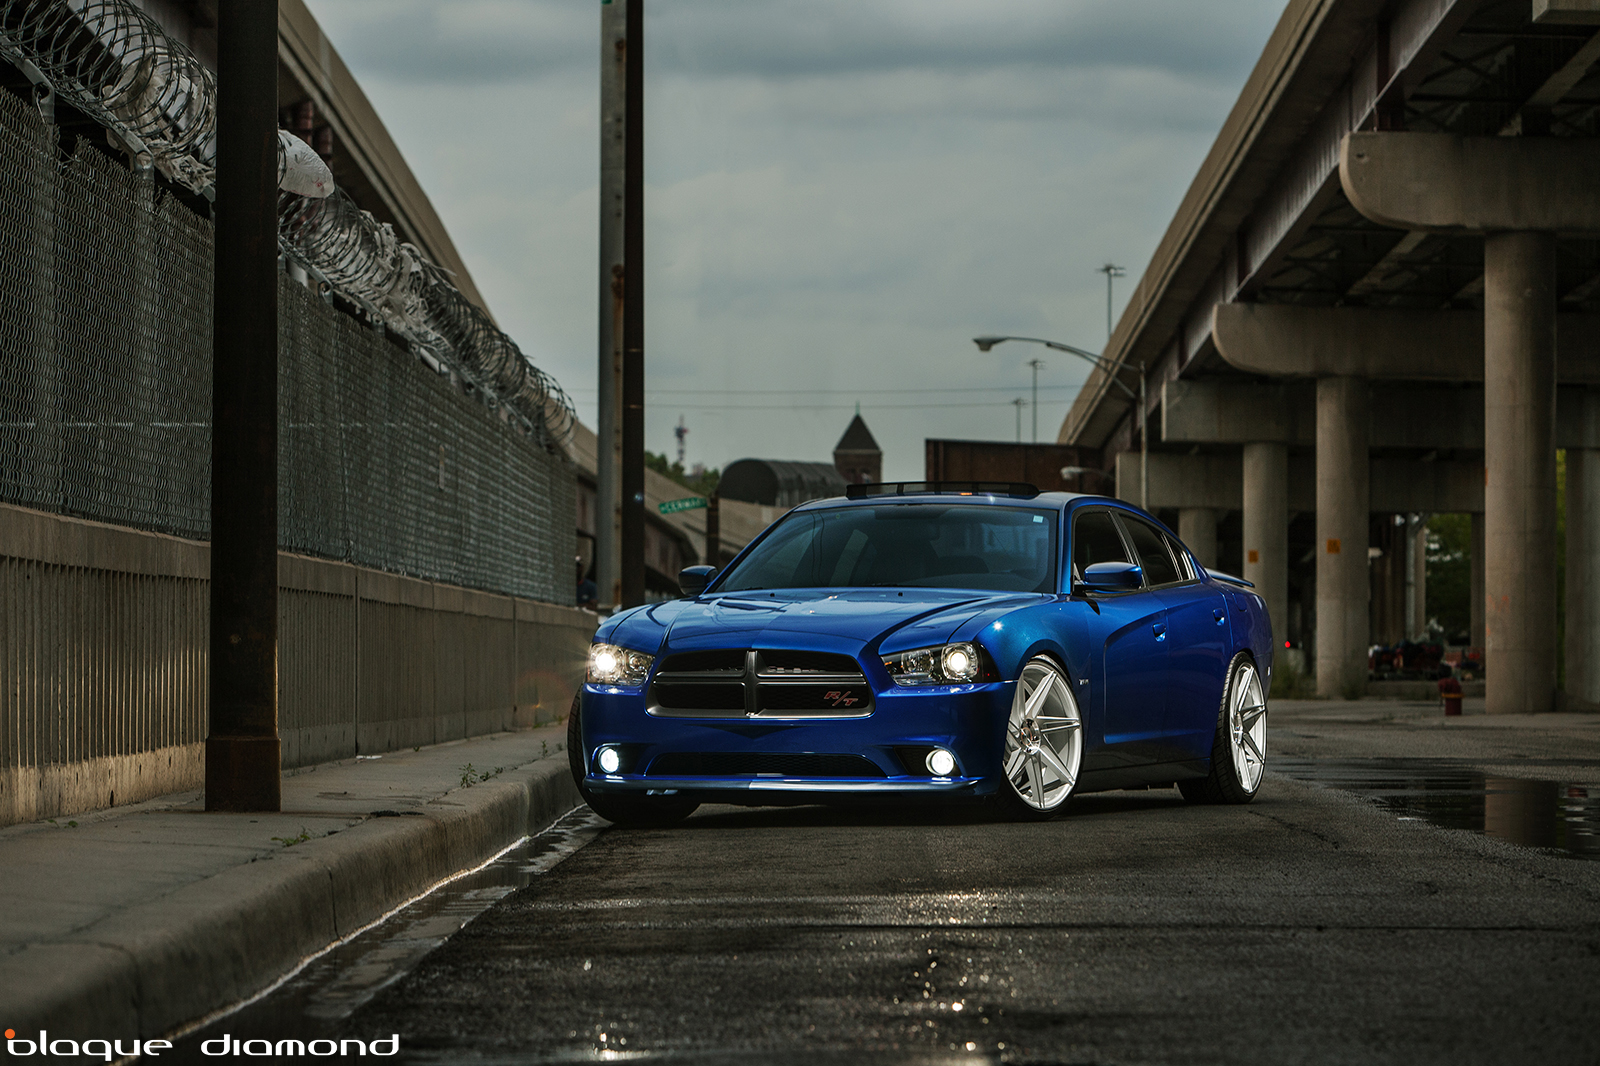 Dodge Charger Rt Slammed On 22 Inch Blaque Diamond Wheels